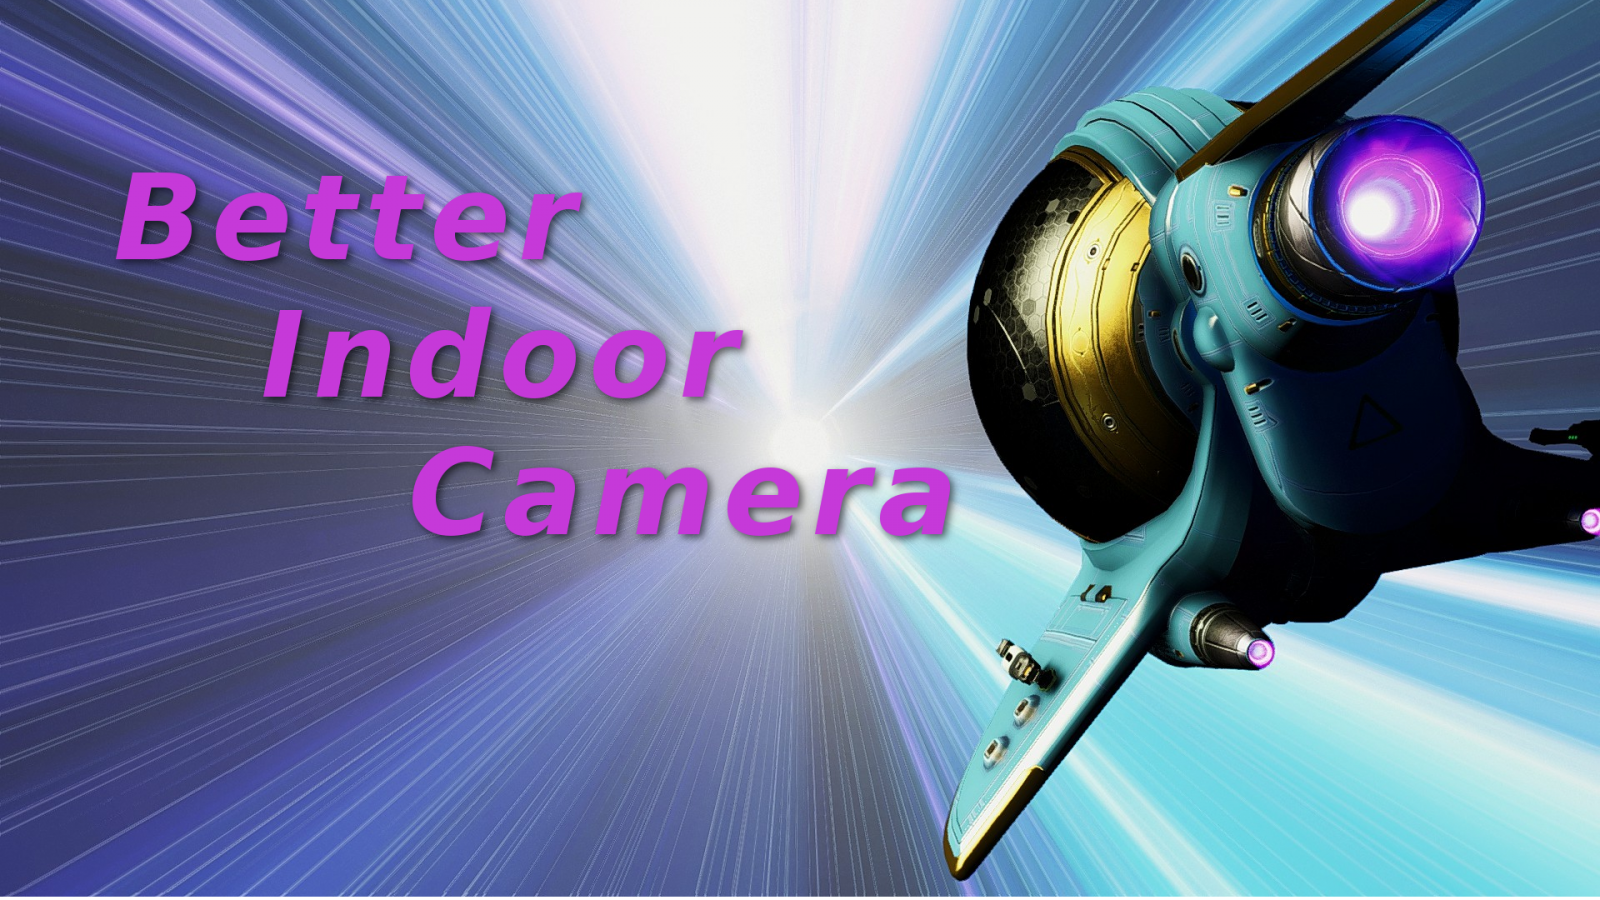 Better Indoor Camera